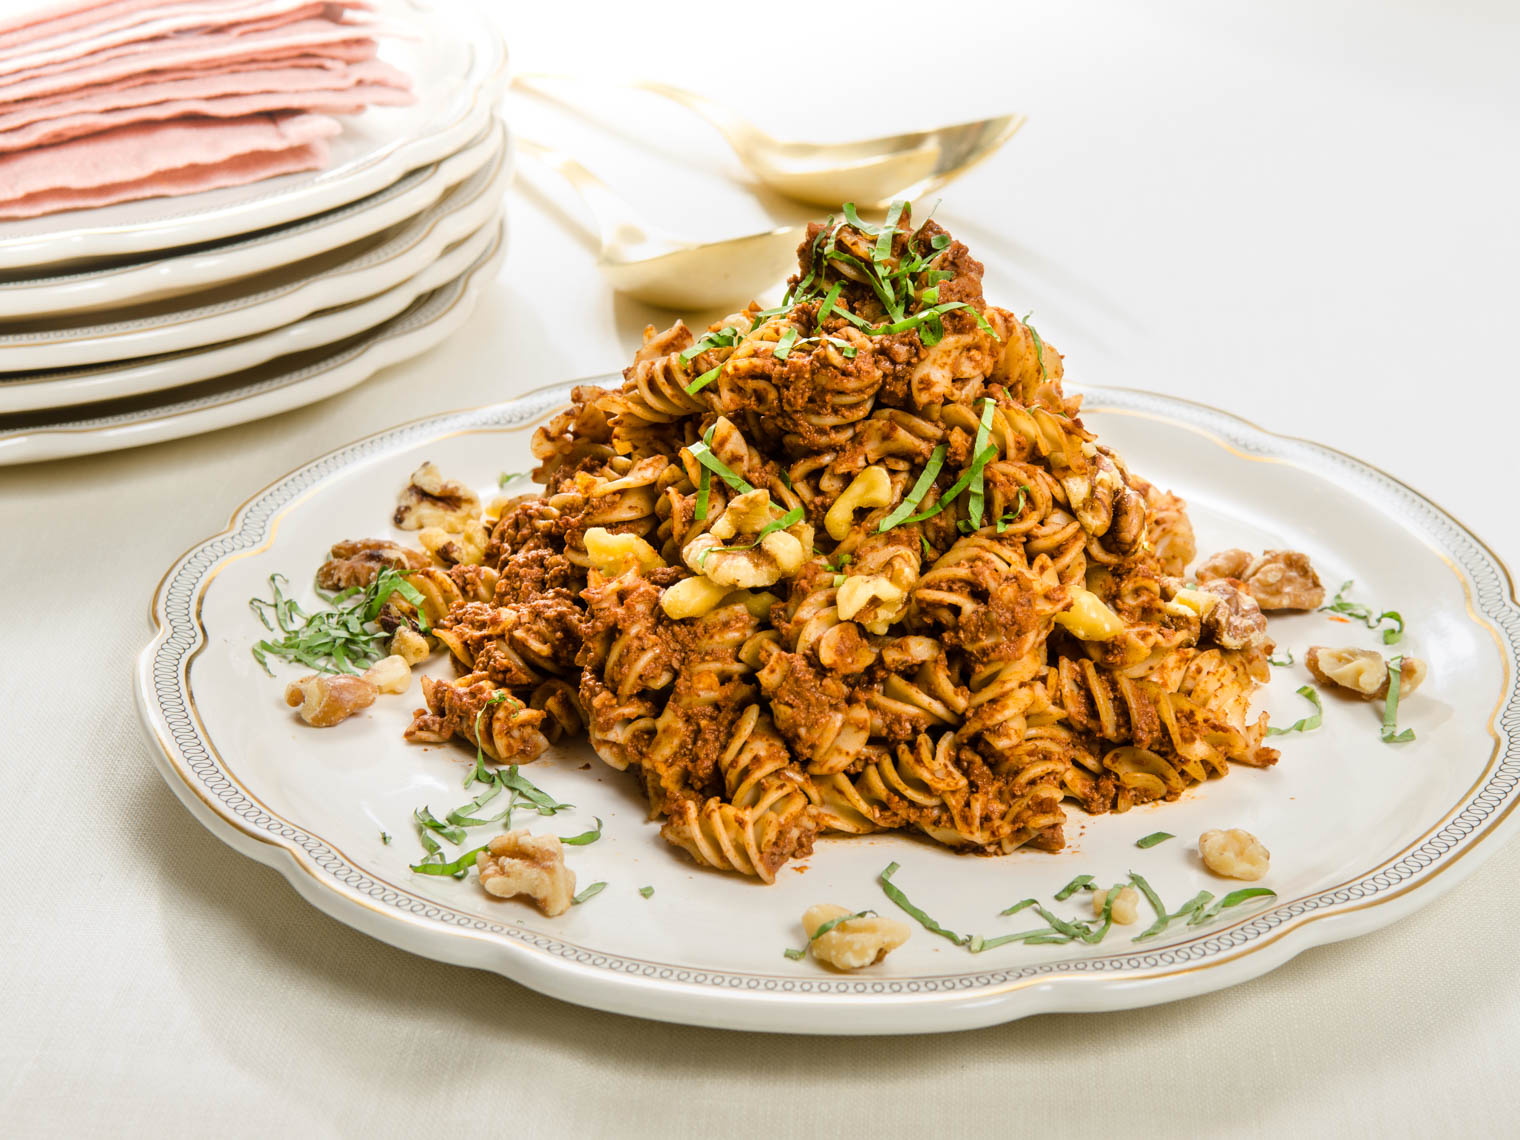 Pasta Dish with Walnuts and Marinara